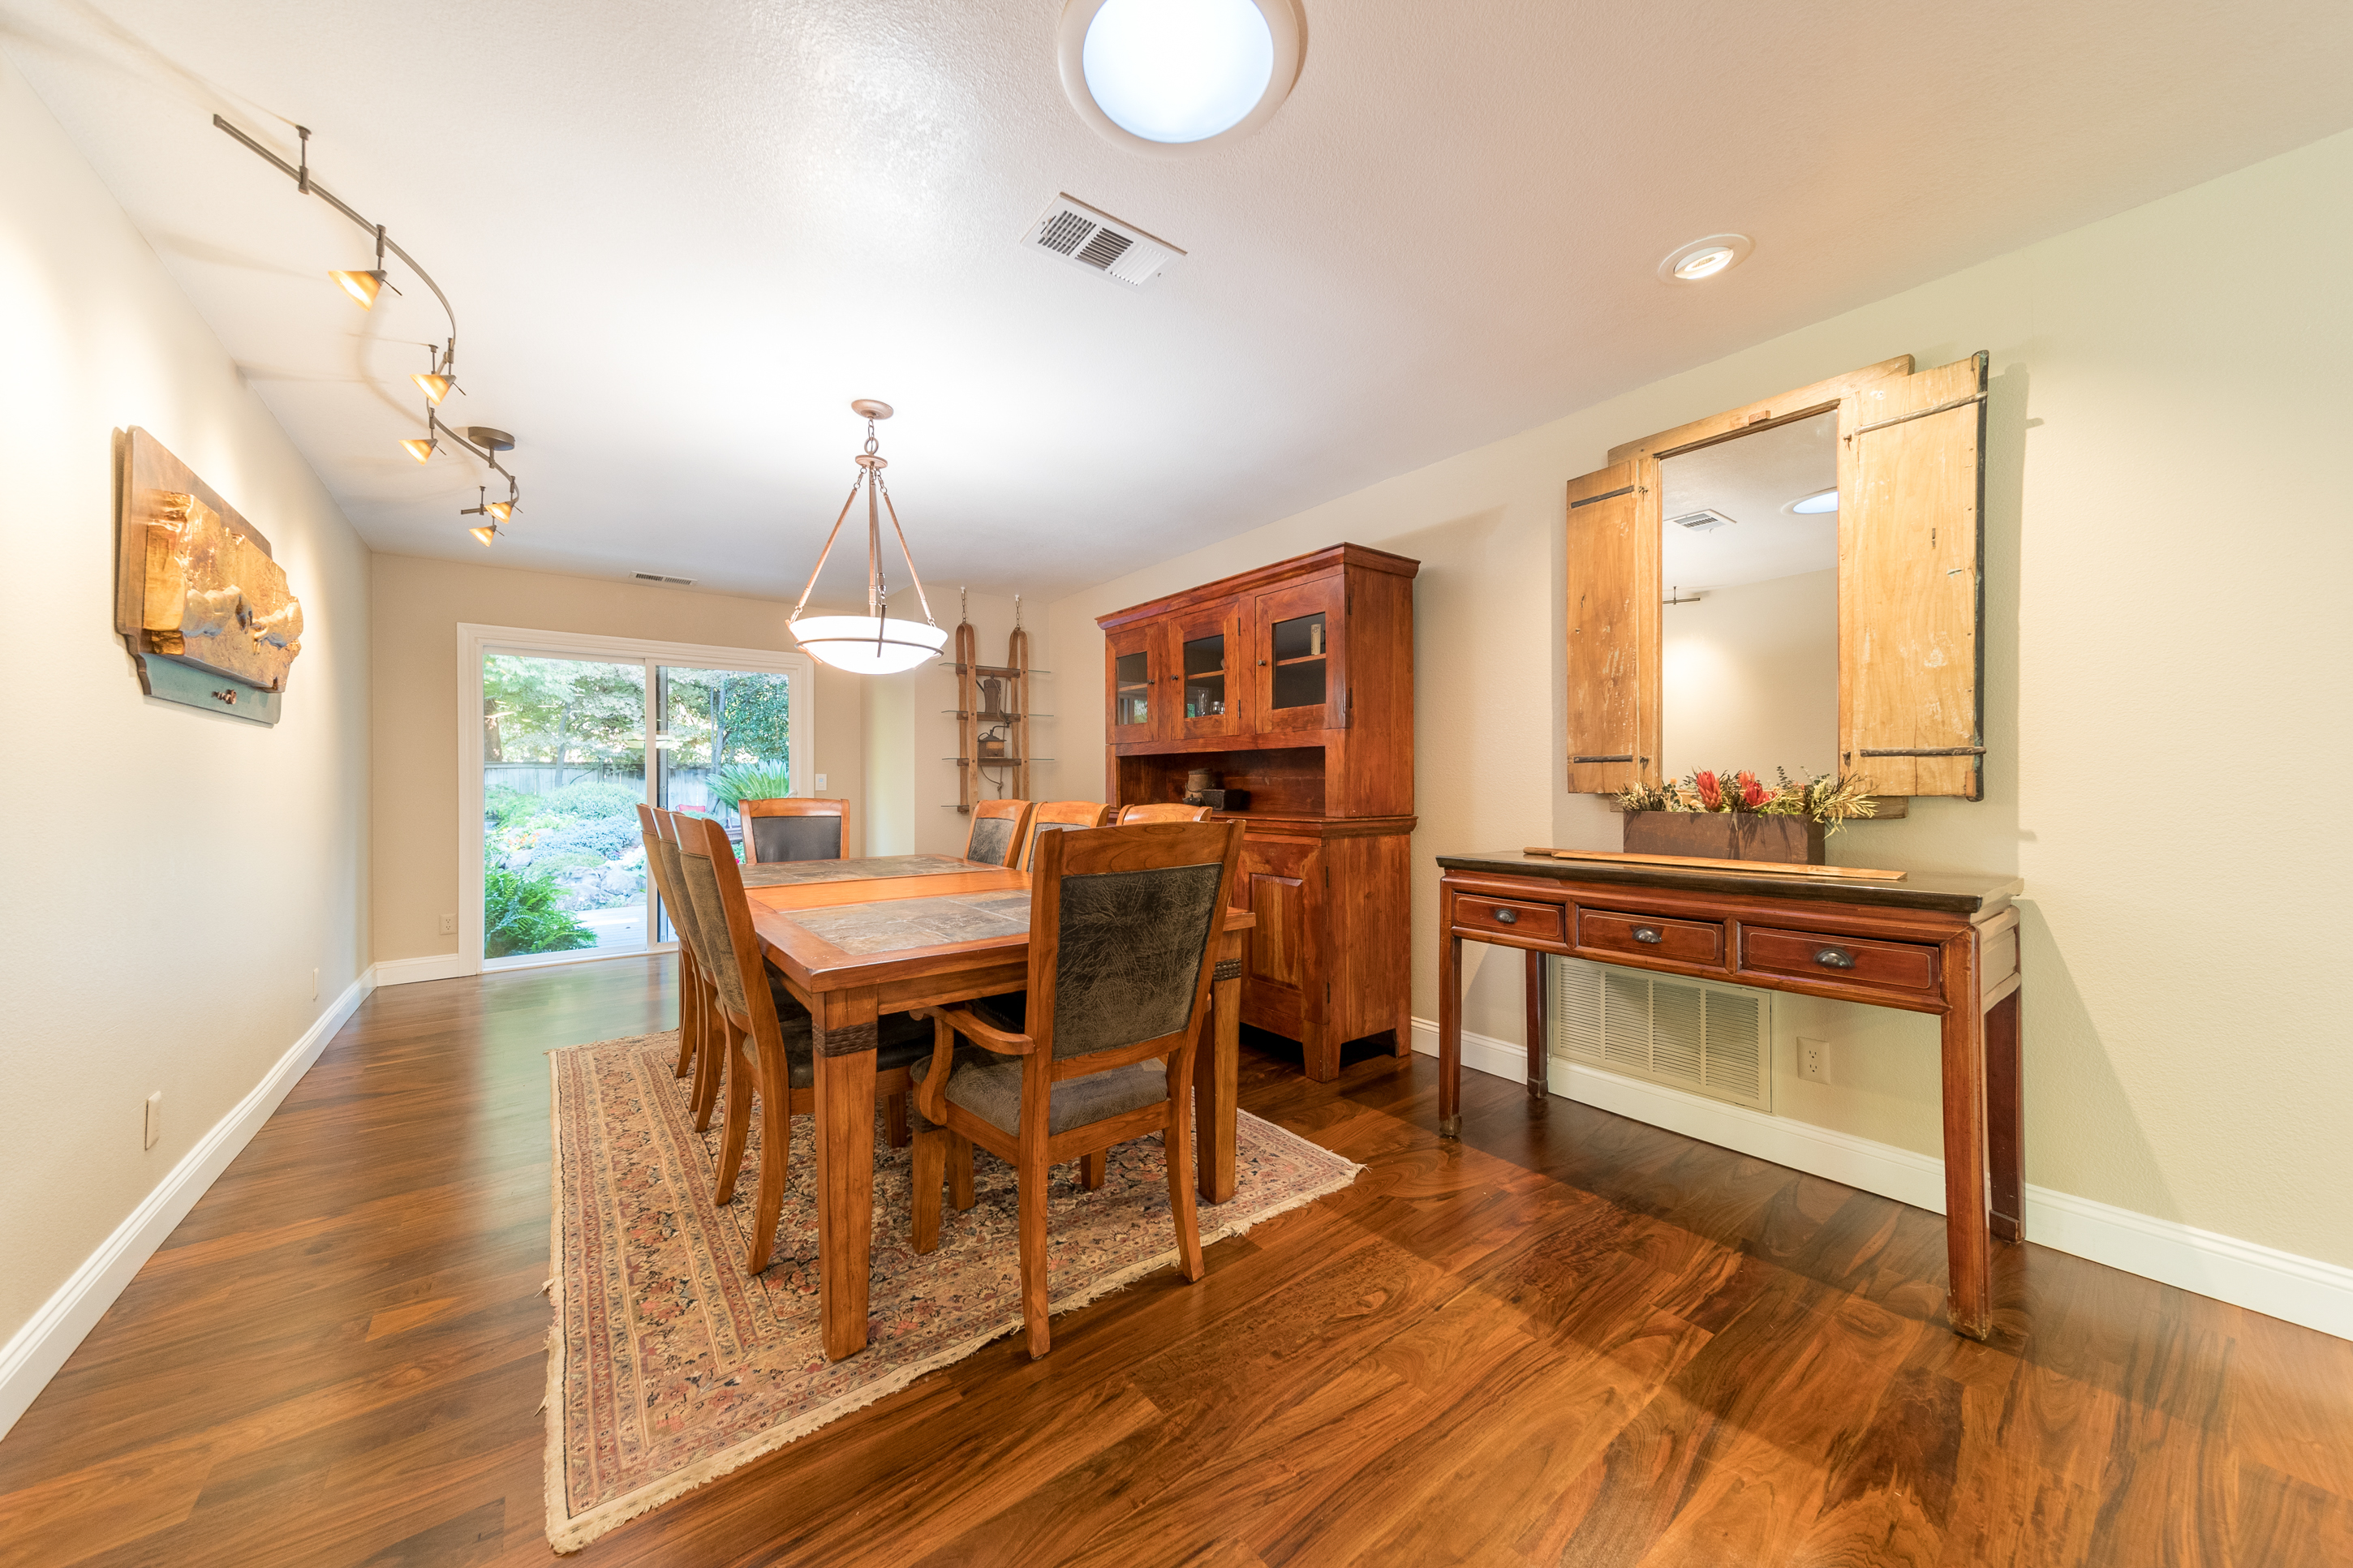 photography portfolio example - home dining room with wooden floors and dutch doors leading outside